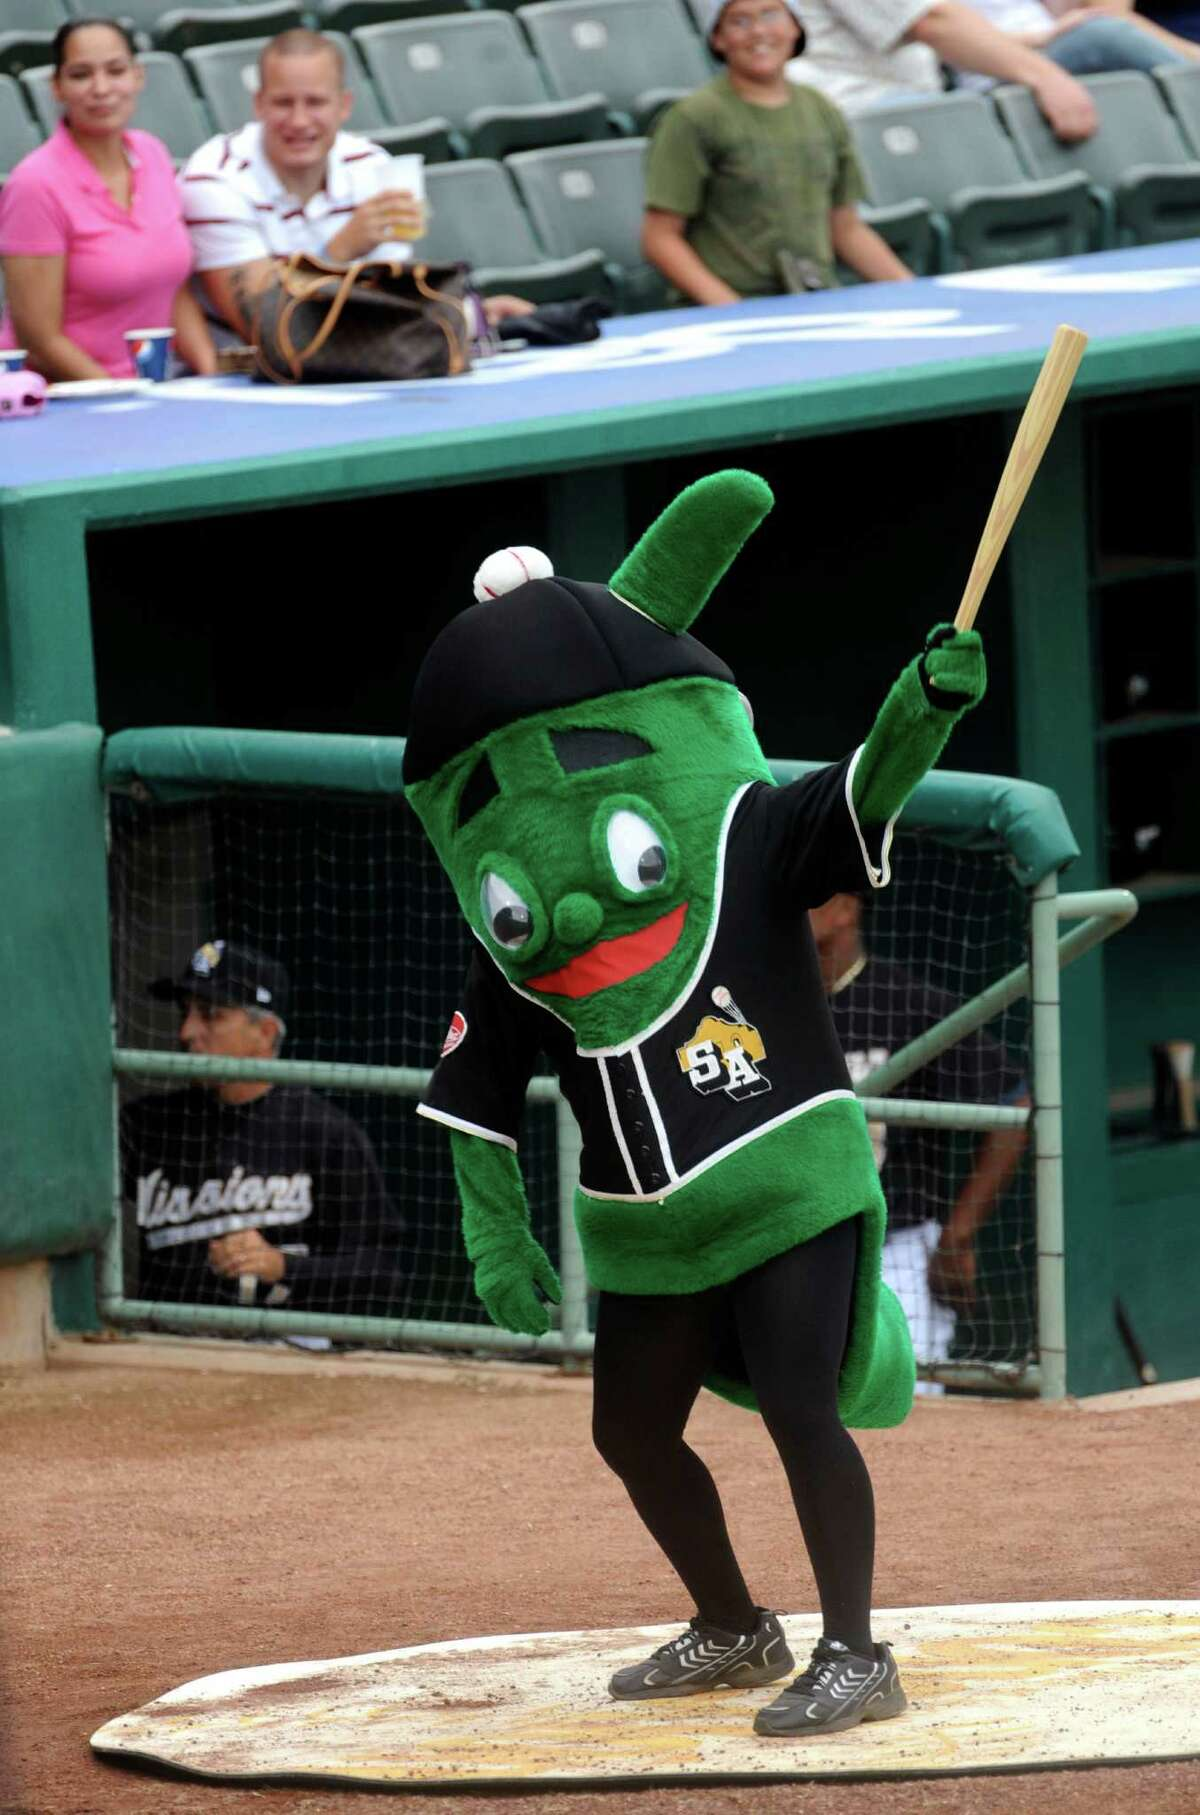 2) He pumps up the team. Do you think the Missions could have played their way to a league title in 2011 without some rowdy fans and an awesome mascot? Didn't think so.